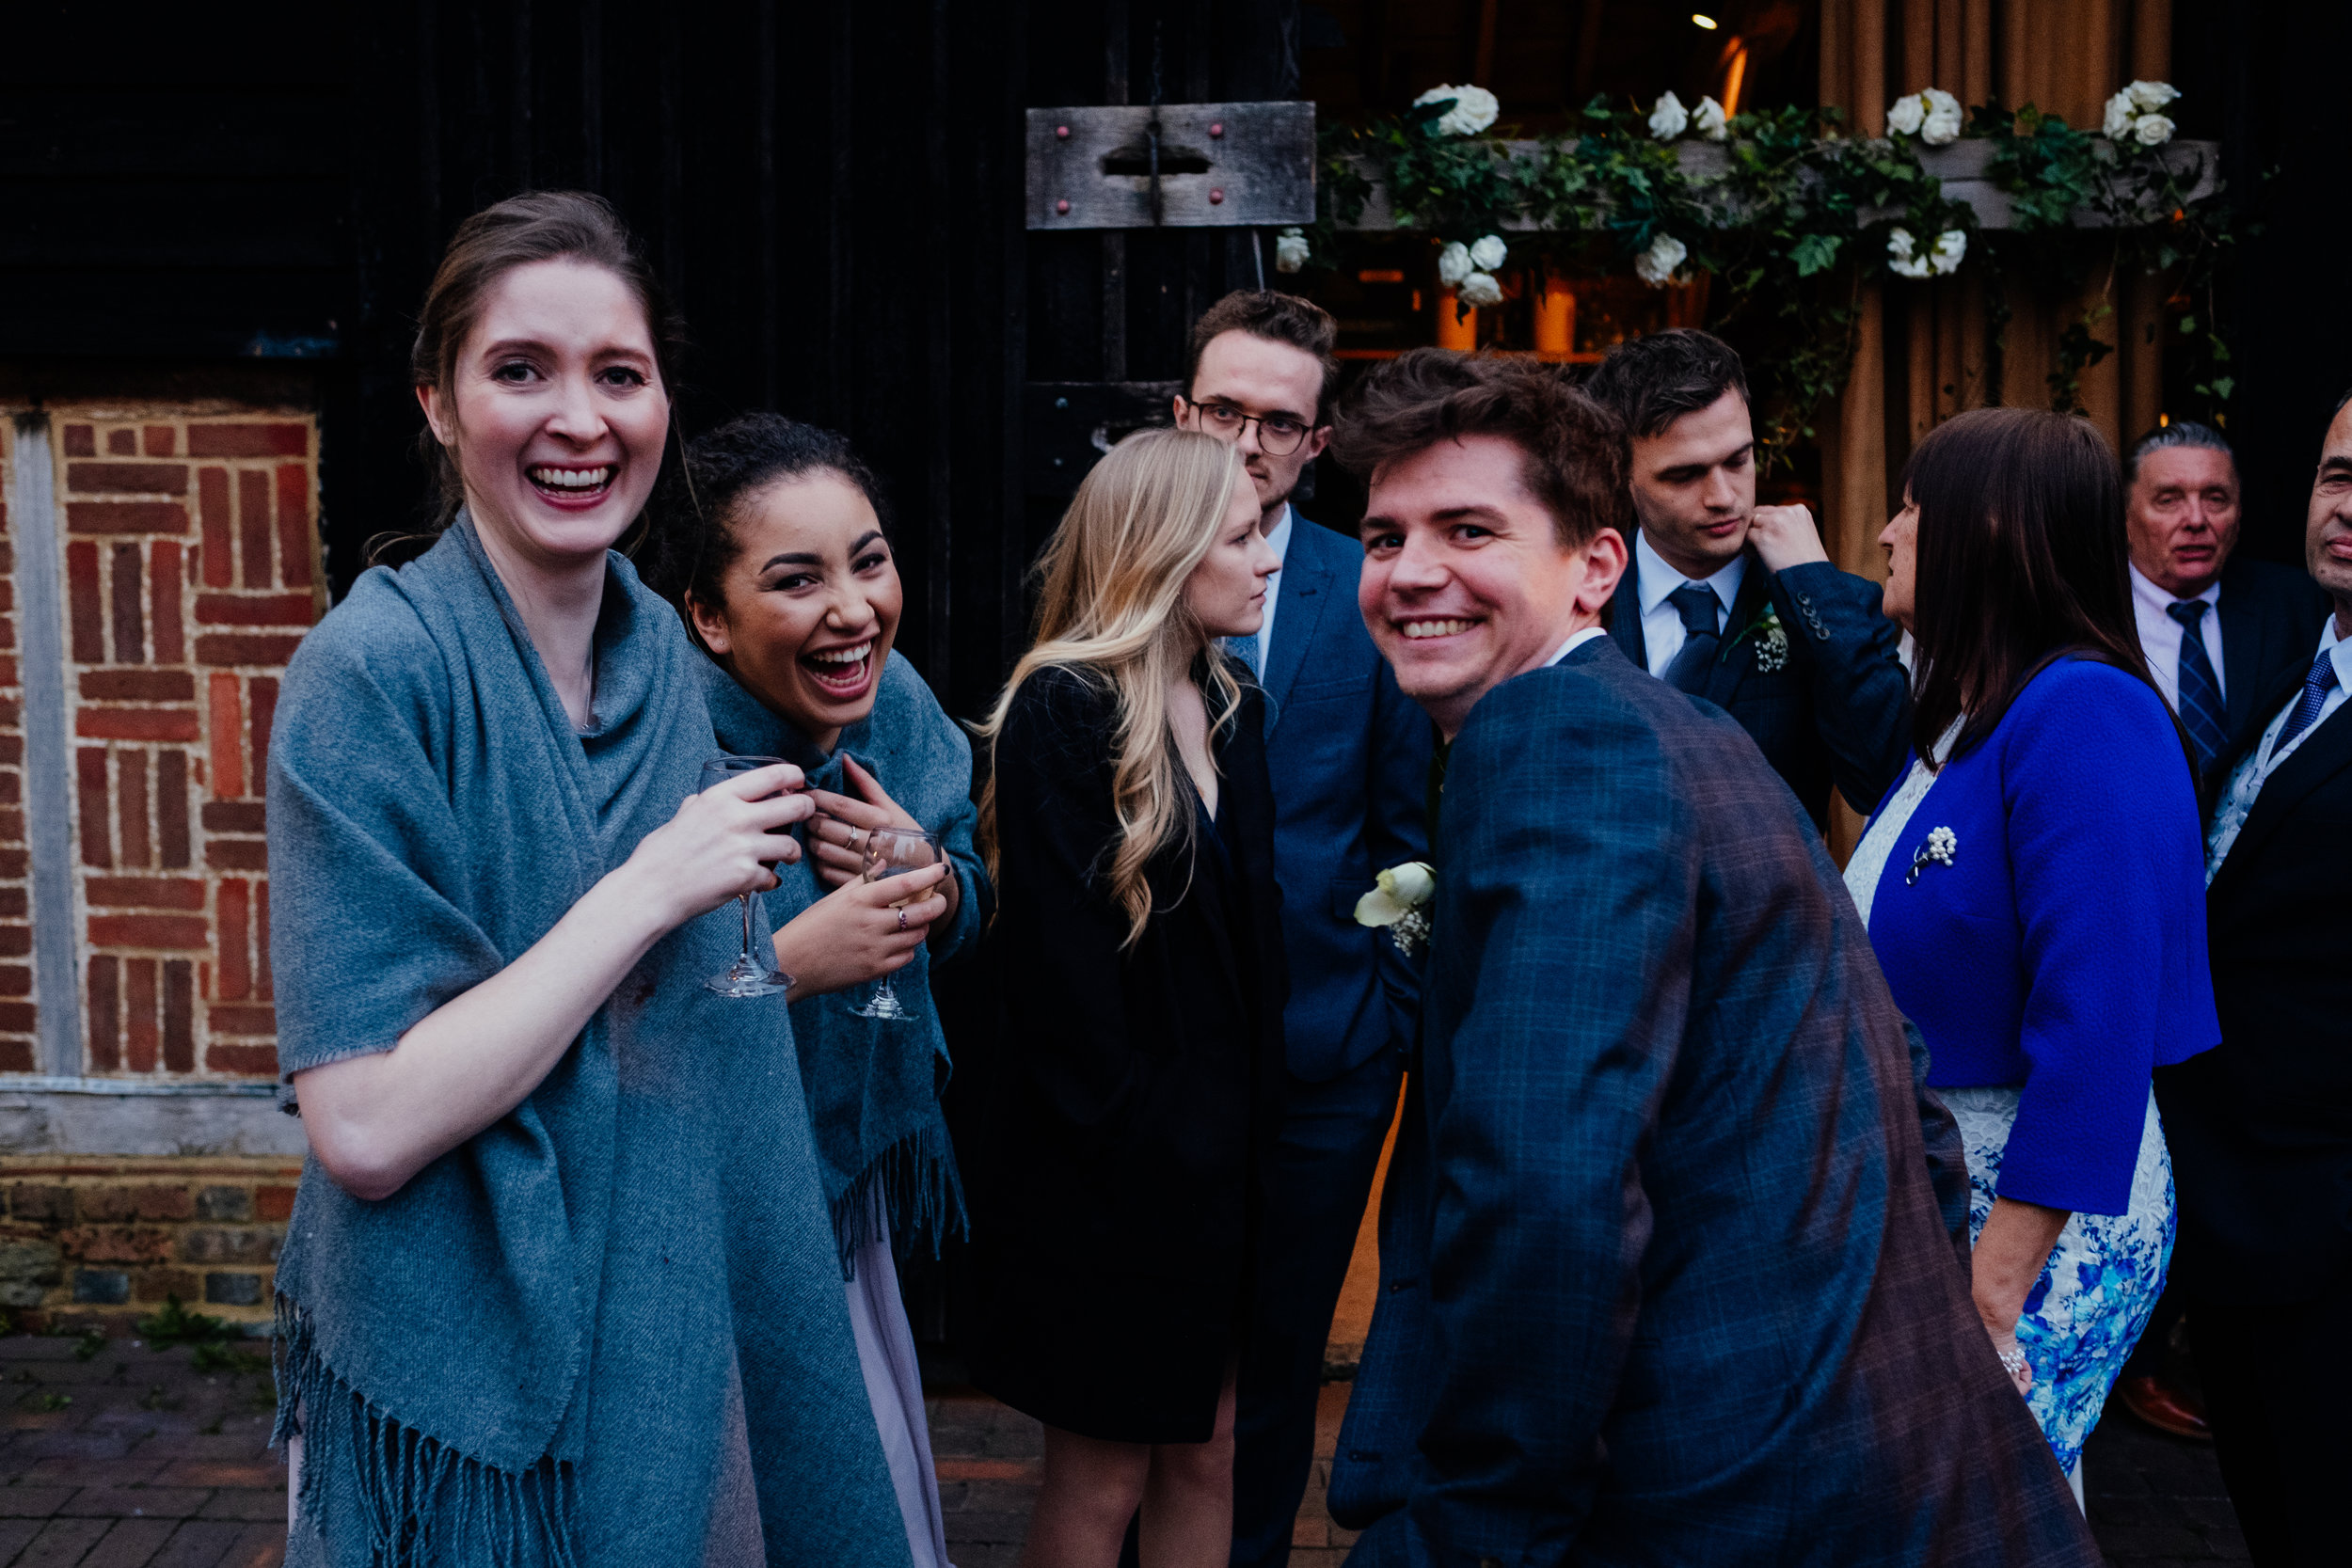 Wedding guests and bridesmaids laughing during wedding reception at Gildings Barn